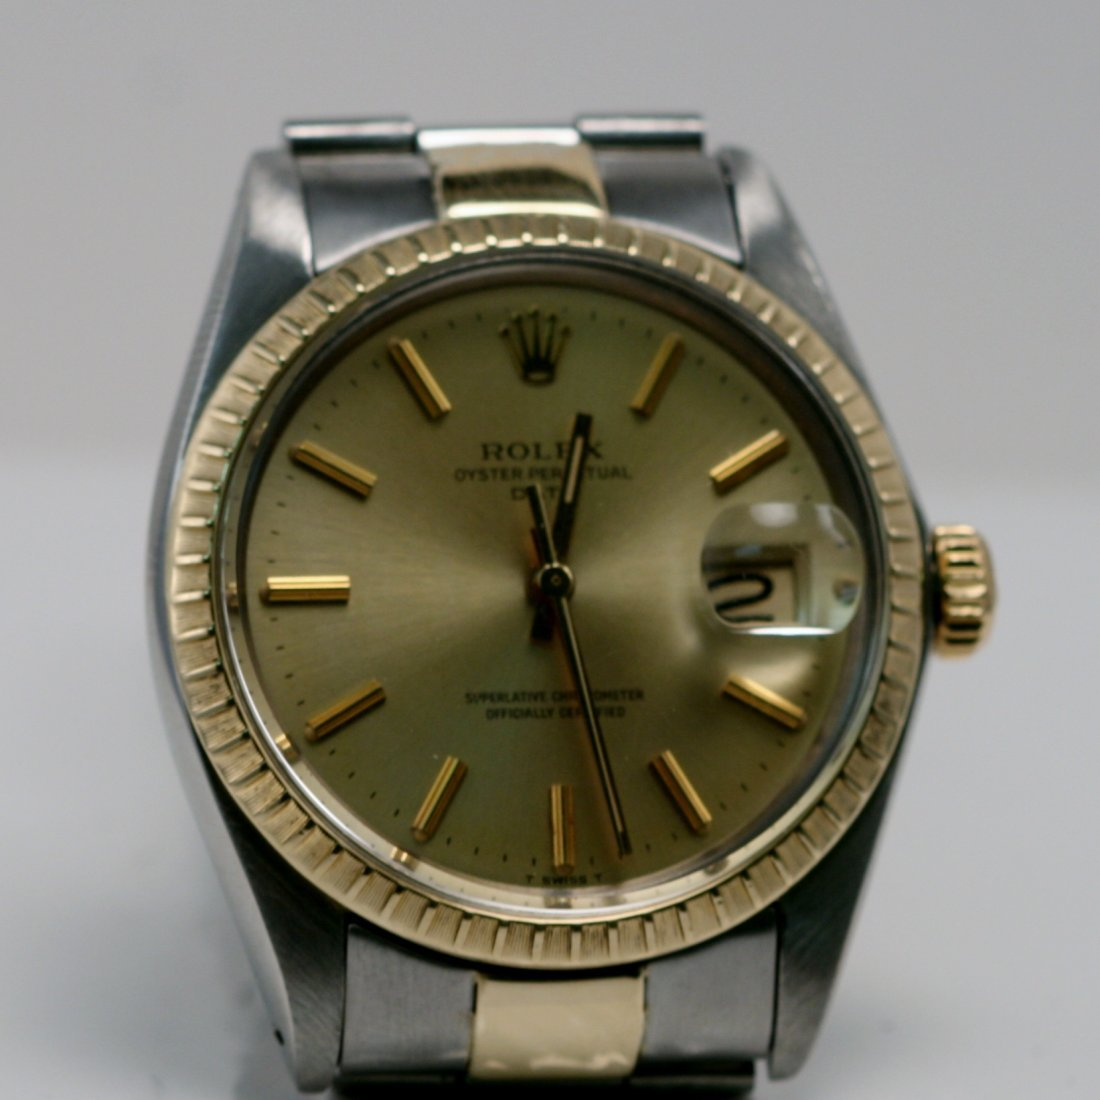 ROLEX MEN'S 2TONE WATCH